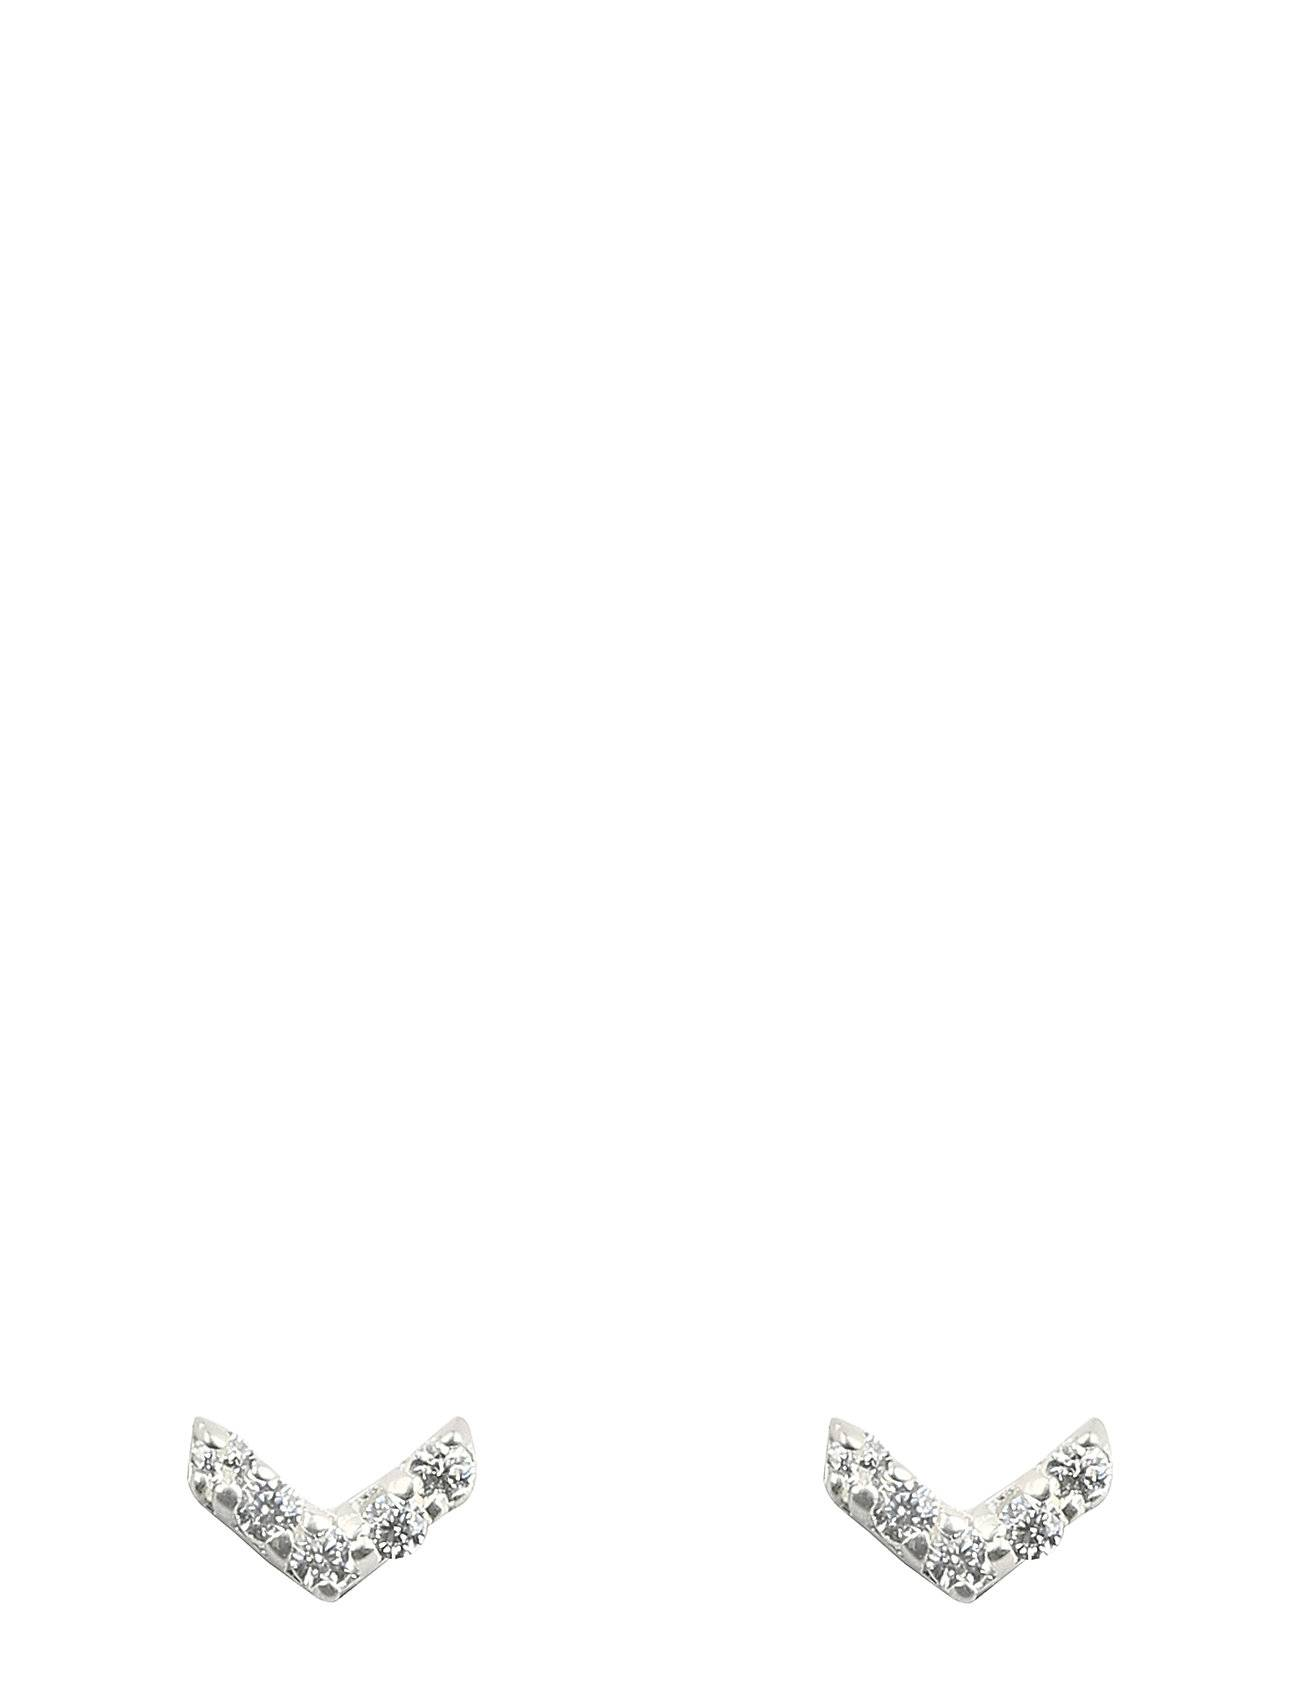 Syster P Mini Stud Double Arrow Earrings Silver Accessories Jewellery Earrings Studs Hopea Syster P